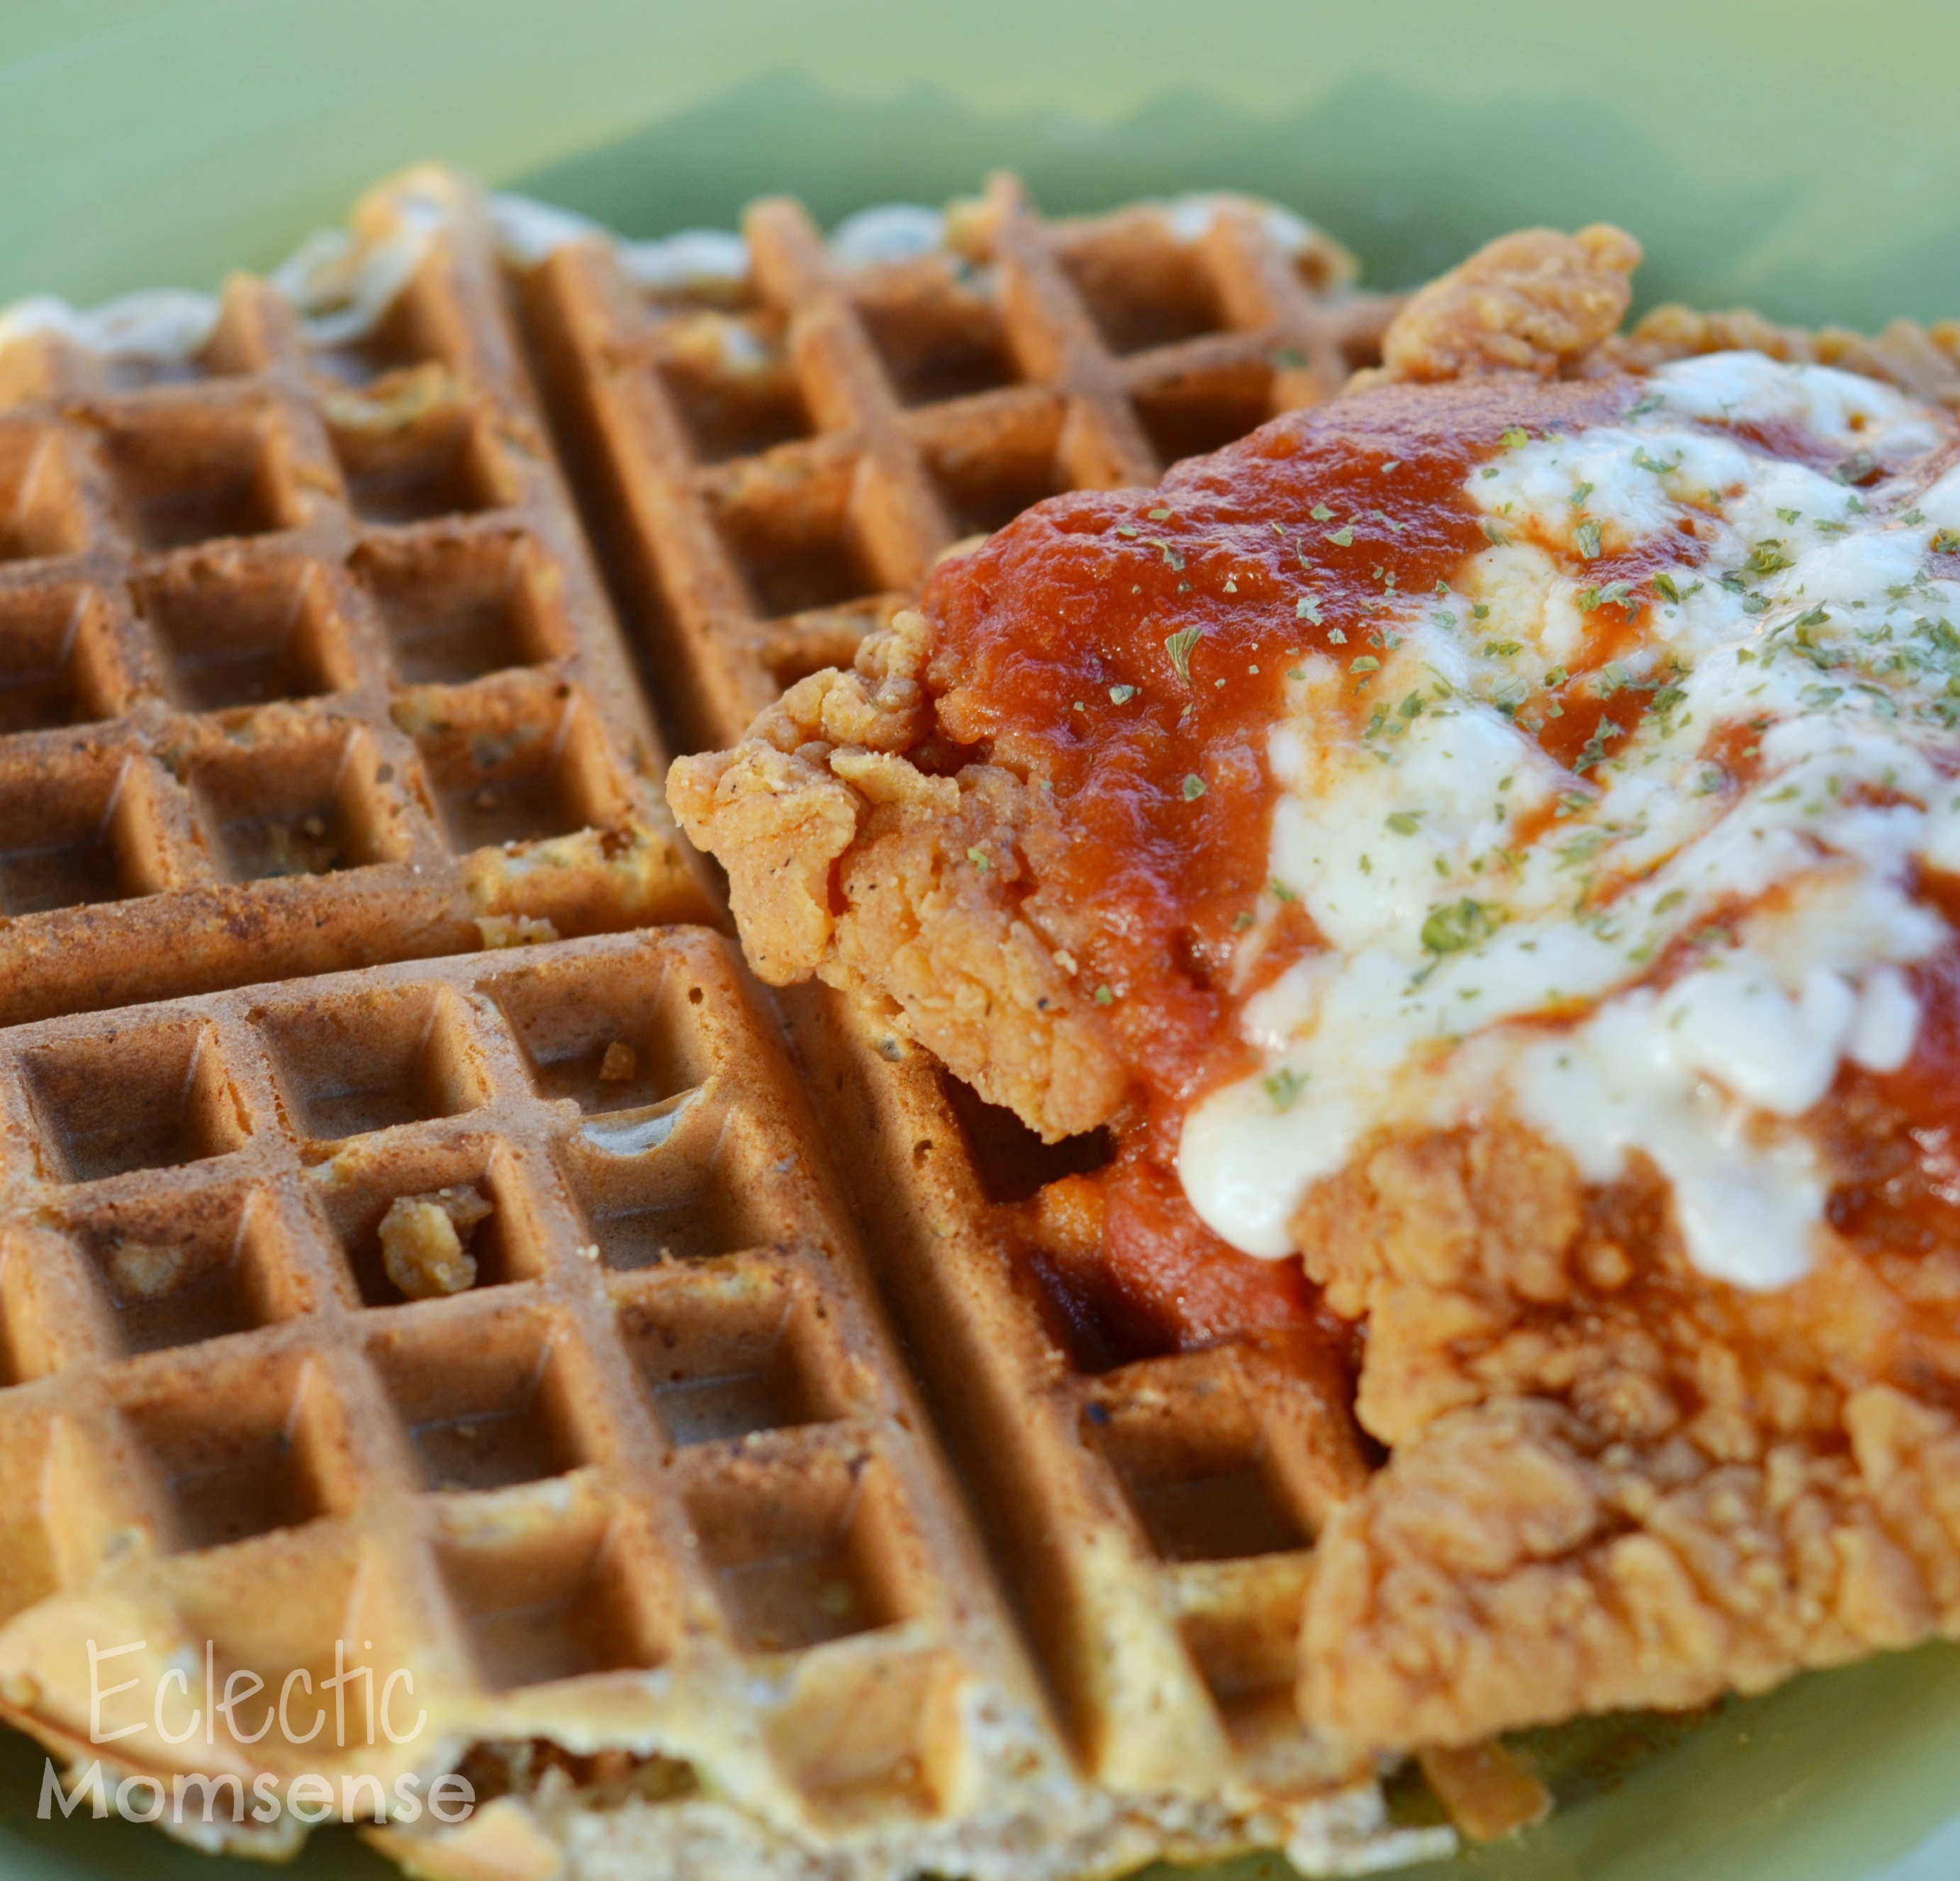 father's day brunch, #NewTraDish, Parmesan Chicken, Oven baked, Chicken & waffles, Ragu